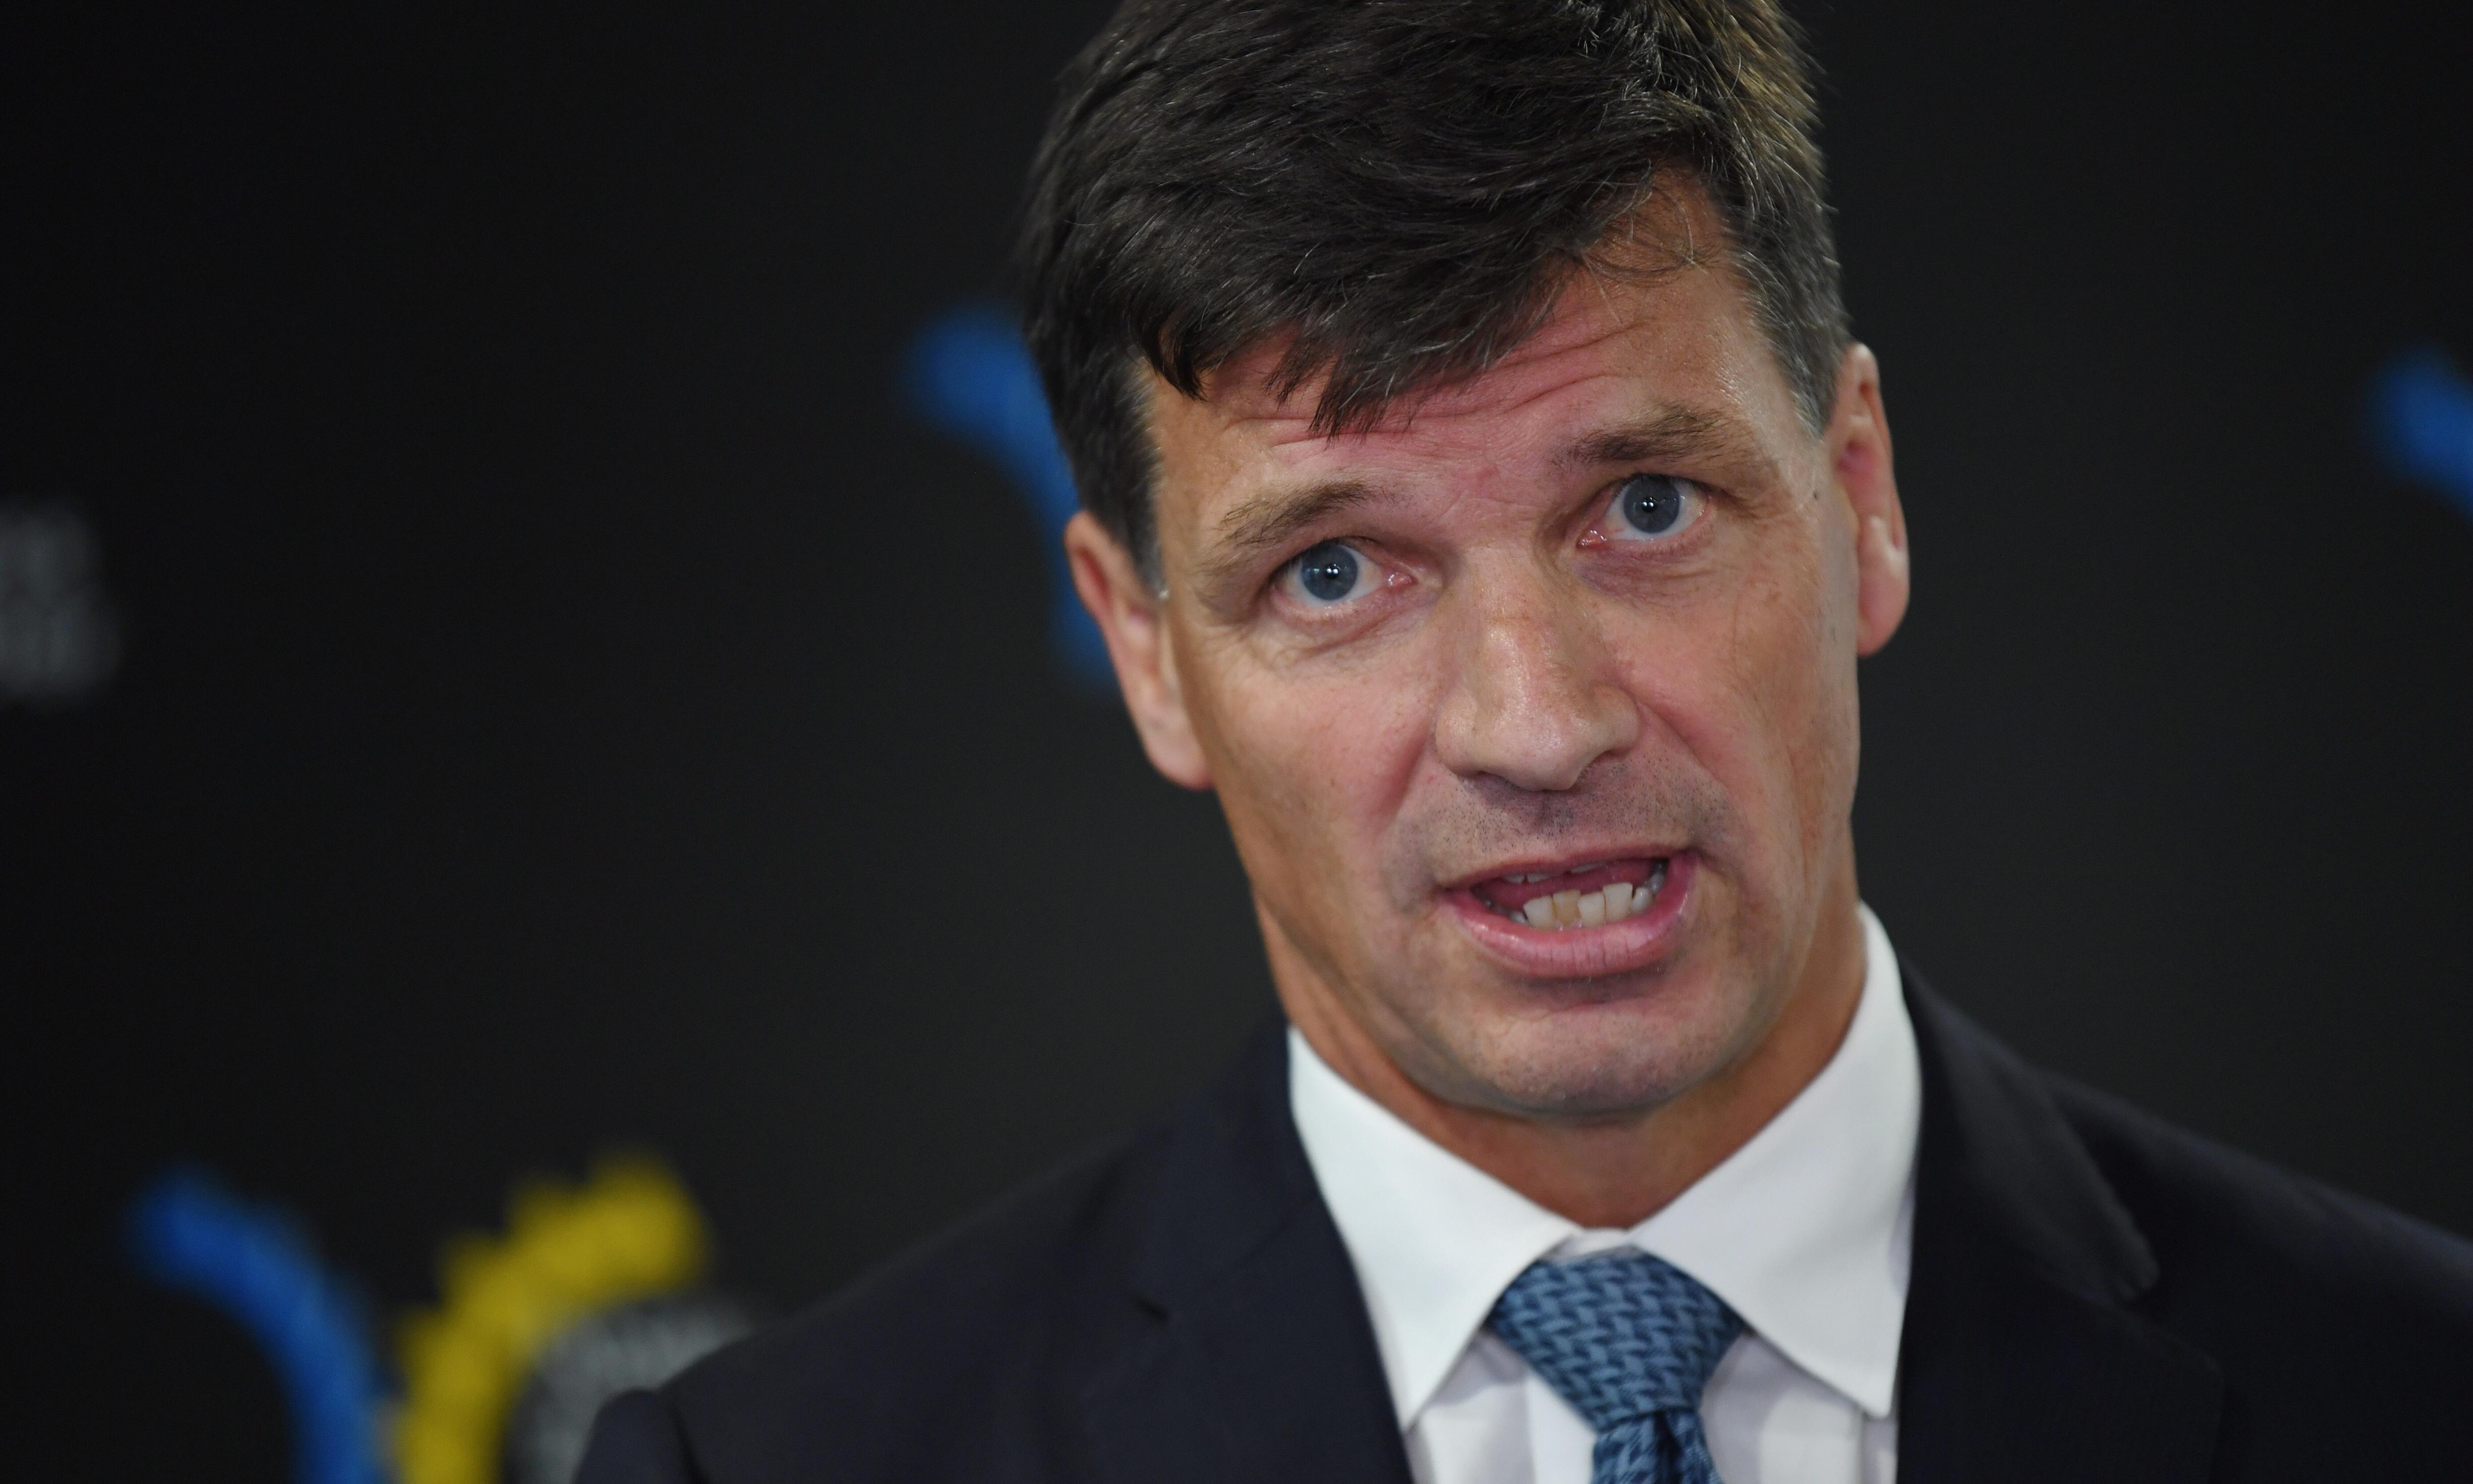 Angus Taylor's Oxford rowing mate's company was a beneficiary of $80m water deal